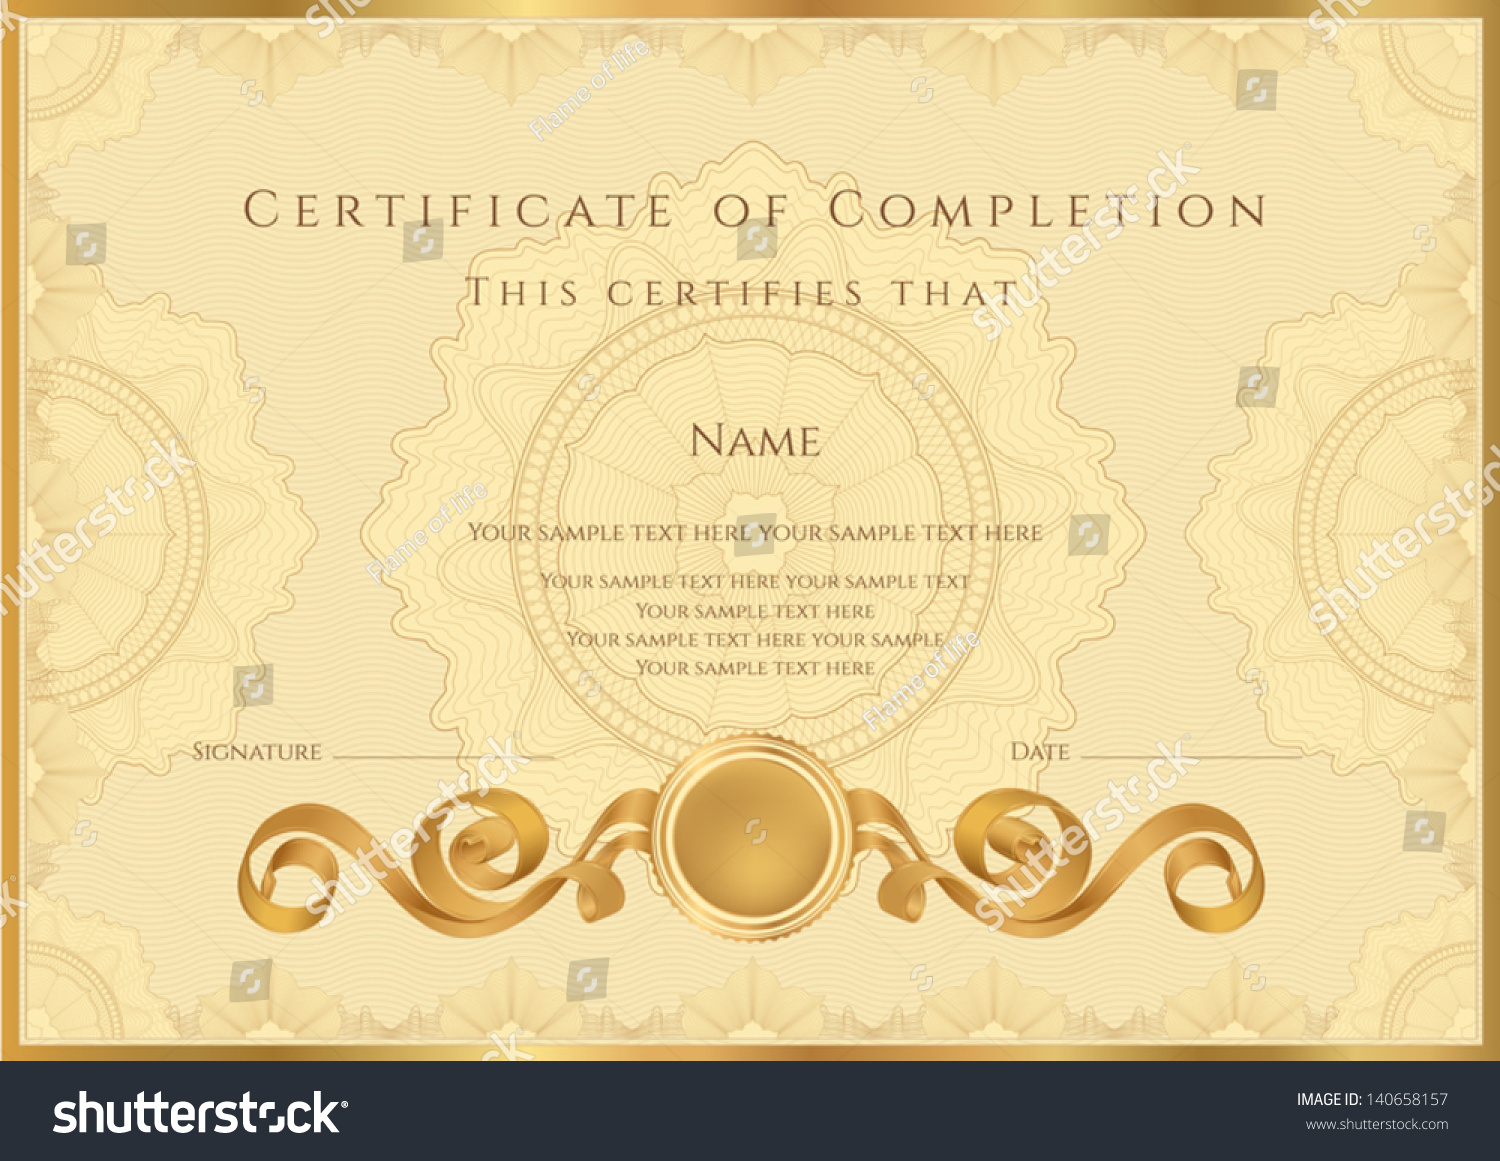 Gold Certificate Diploma Completion Design Template Stock ...